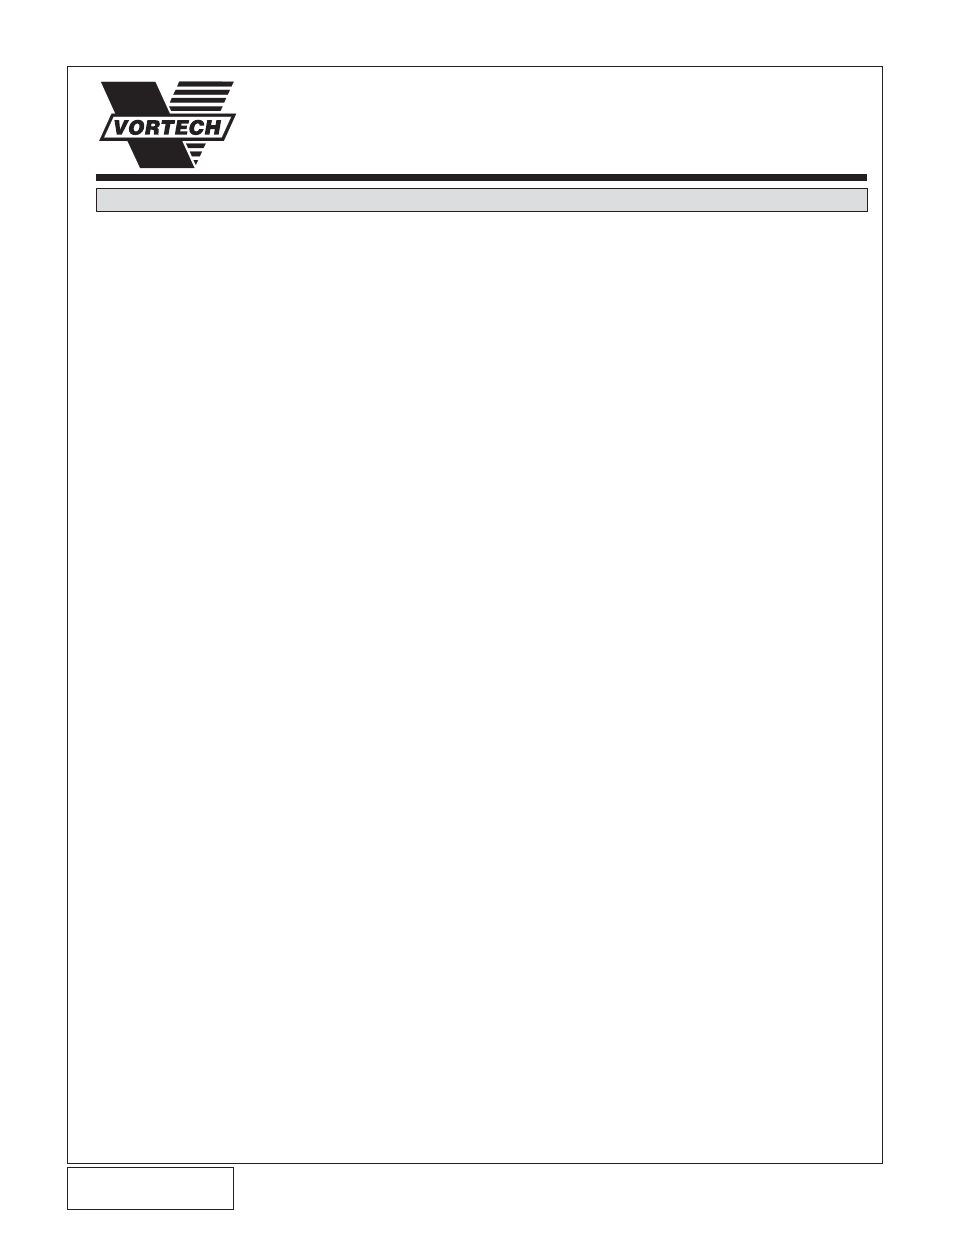 Vortech 1998-2001 5 7L LS1 F-Body User Manual   Page 10 / 32